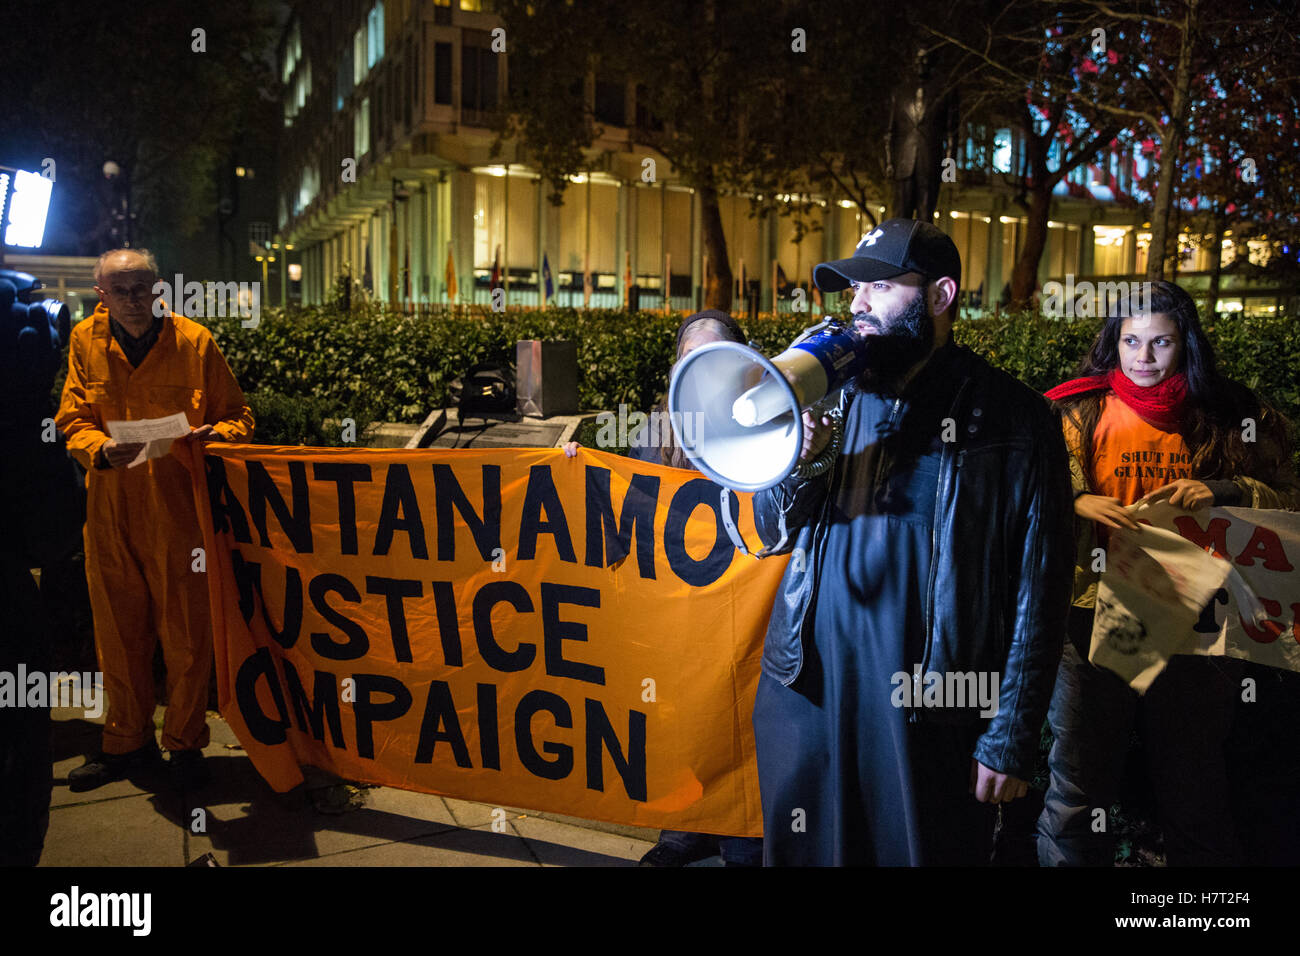 London, UK. 8th November, 2016. Asif Uddin from the Justice for Anis Sardar campaign addresses activists from the - Stock Image